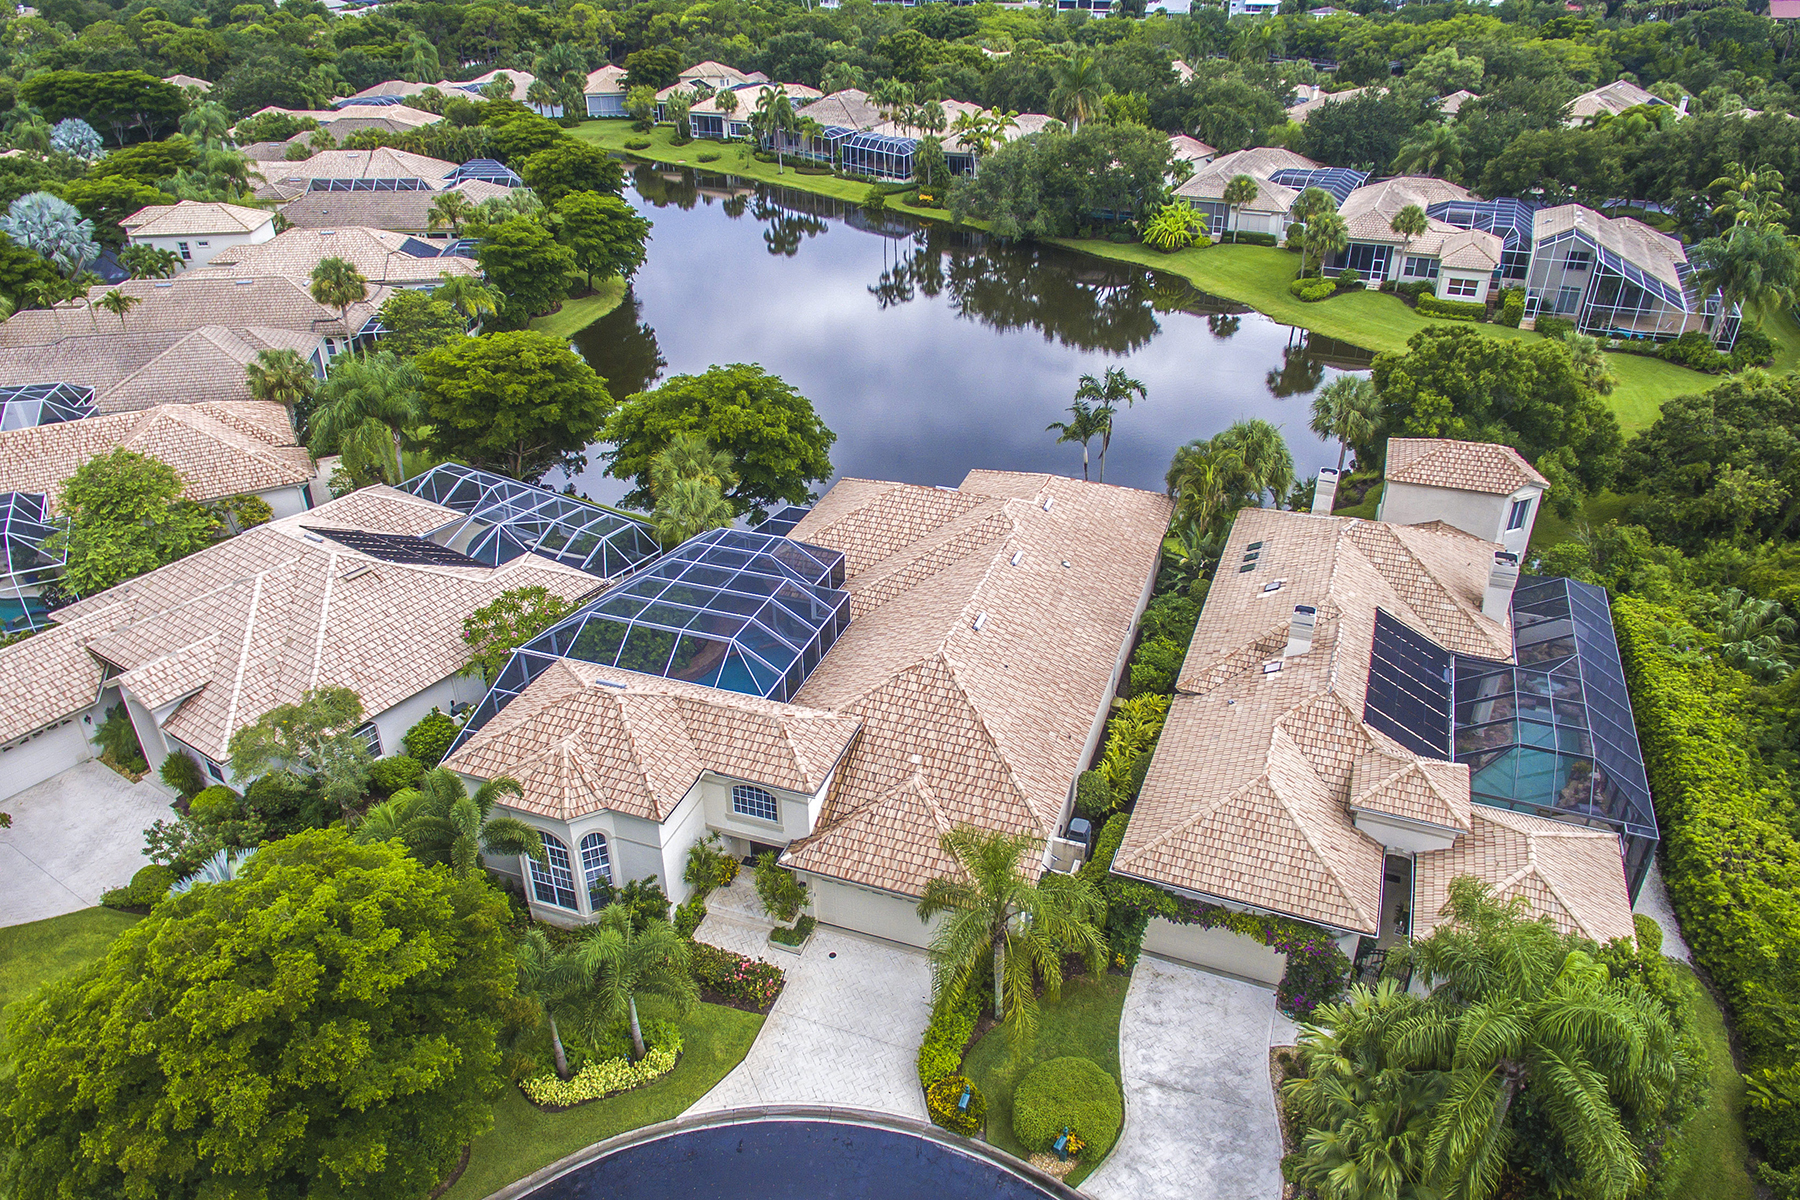 Villa per Vendita alle ore BONITA BAY - THE ANCHORAGE 27508 Riverbank Dr Bonita Springs, Florida, 34134 Stati Uniti